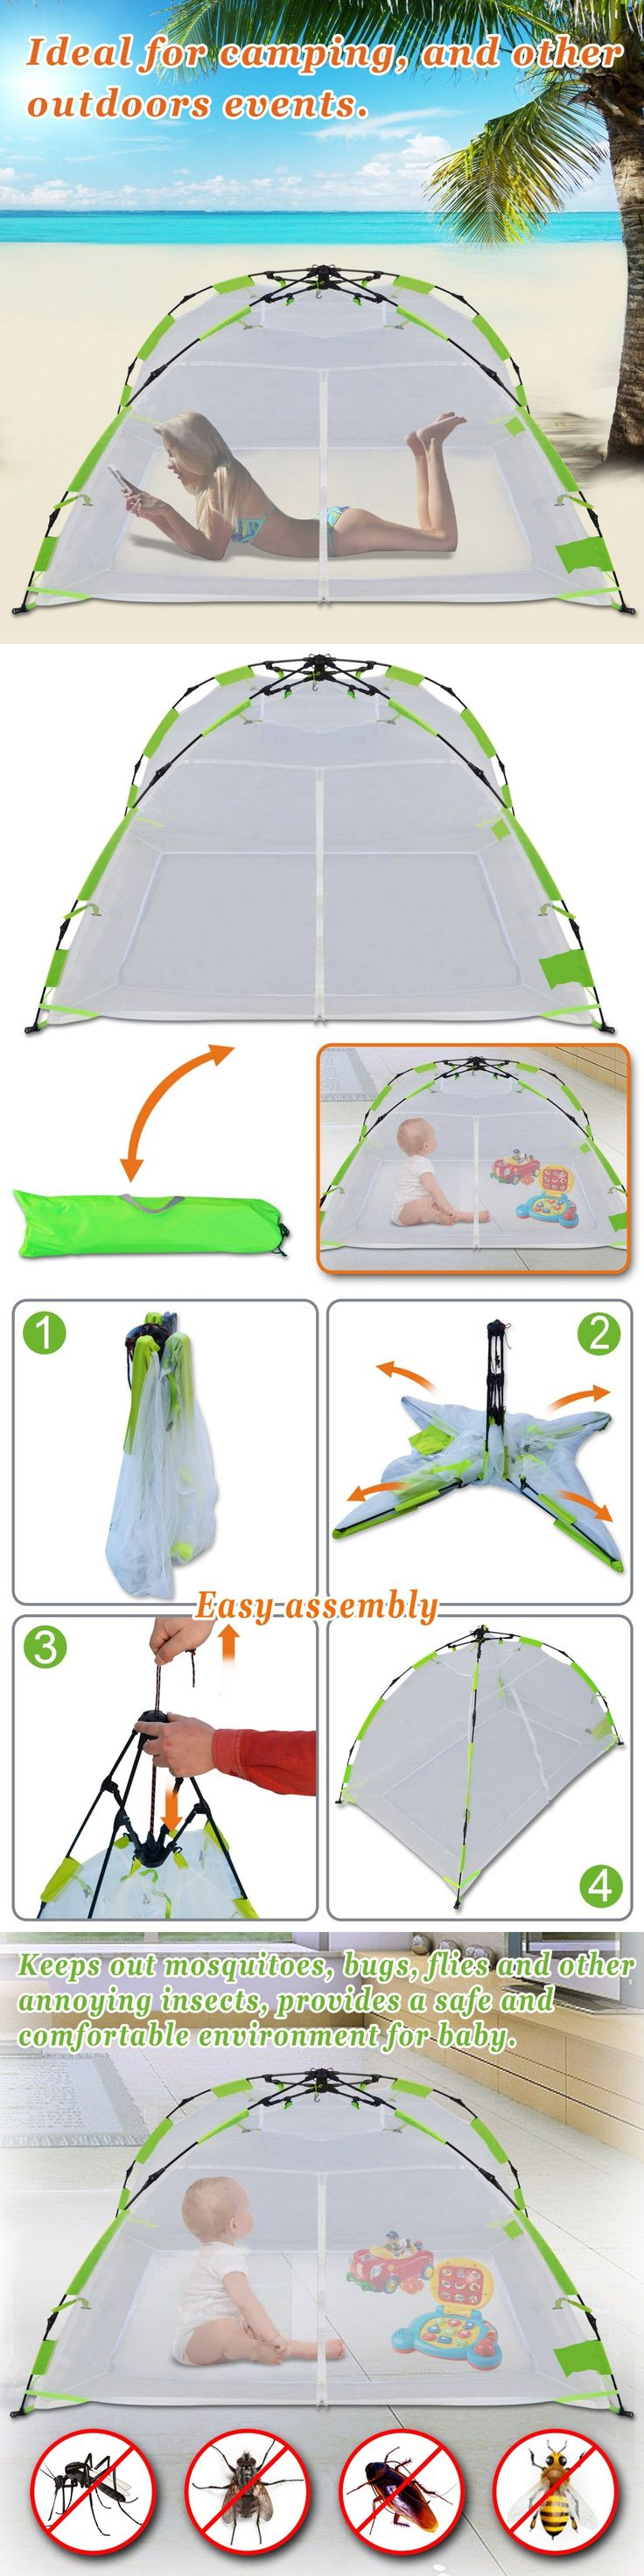 Canopies and Netting 180905: Kid Adult Pet Mosquito Multi-Use Net Pop Up Instant Tent Camping Indoor Outdoor -> BUY IT NOW ONLY: $46.99 on eBay!